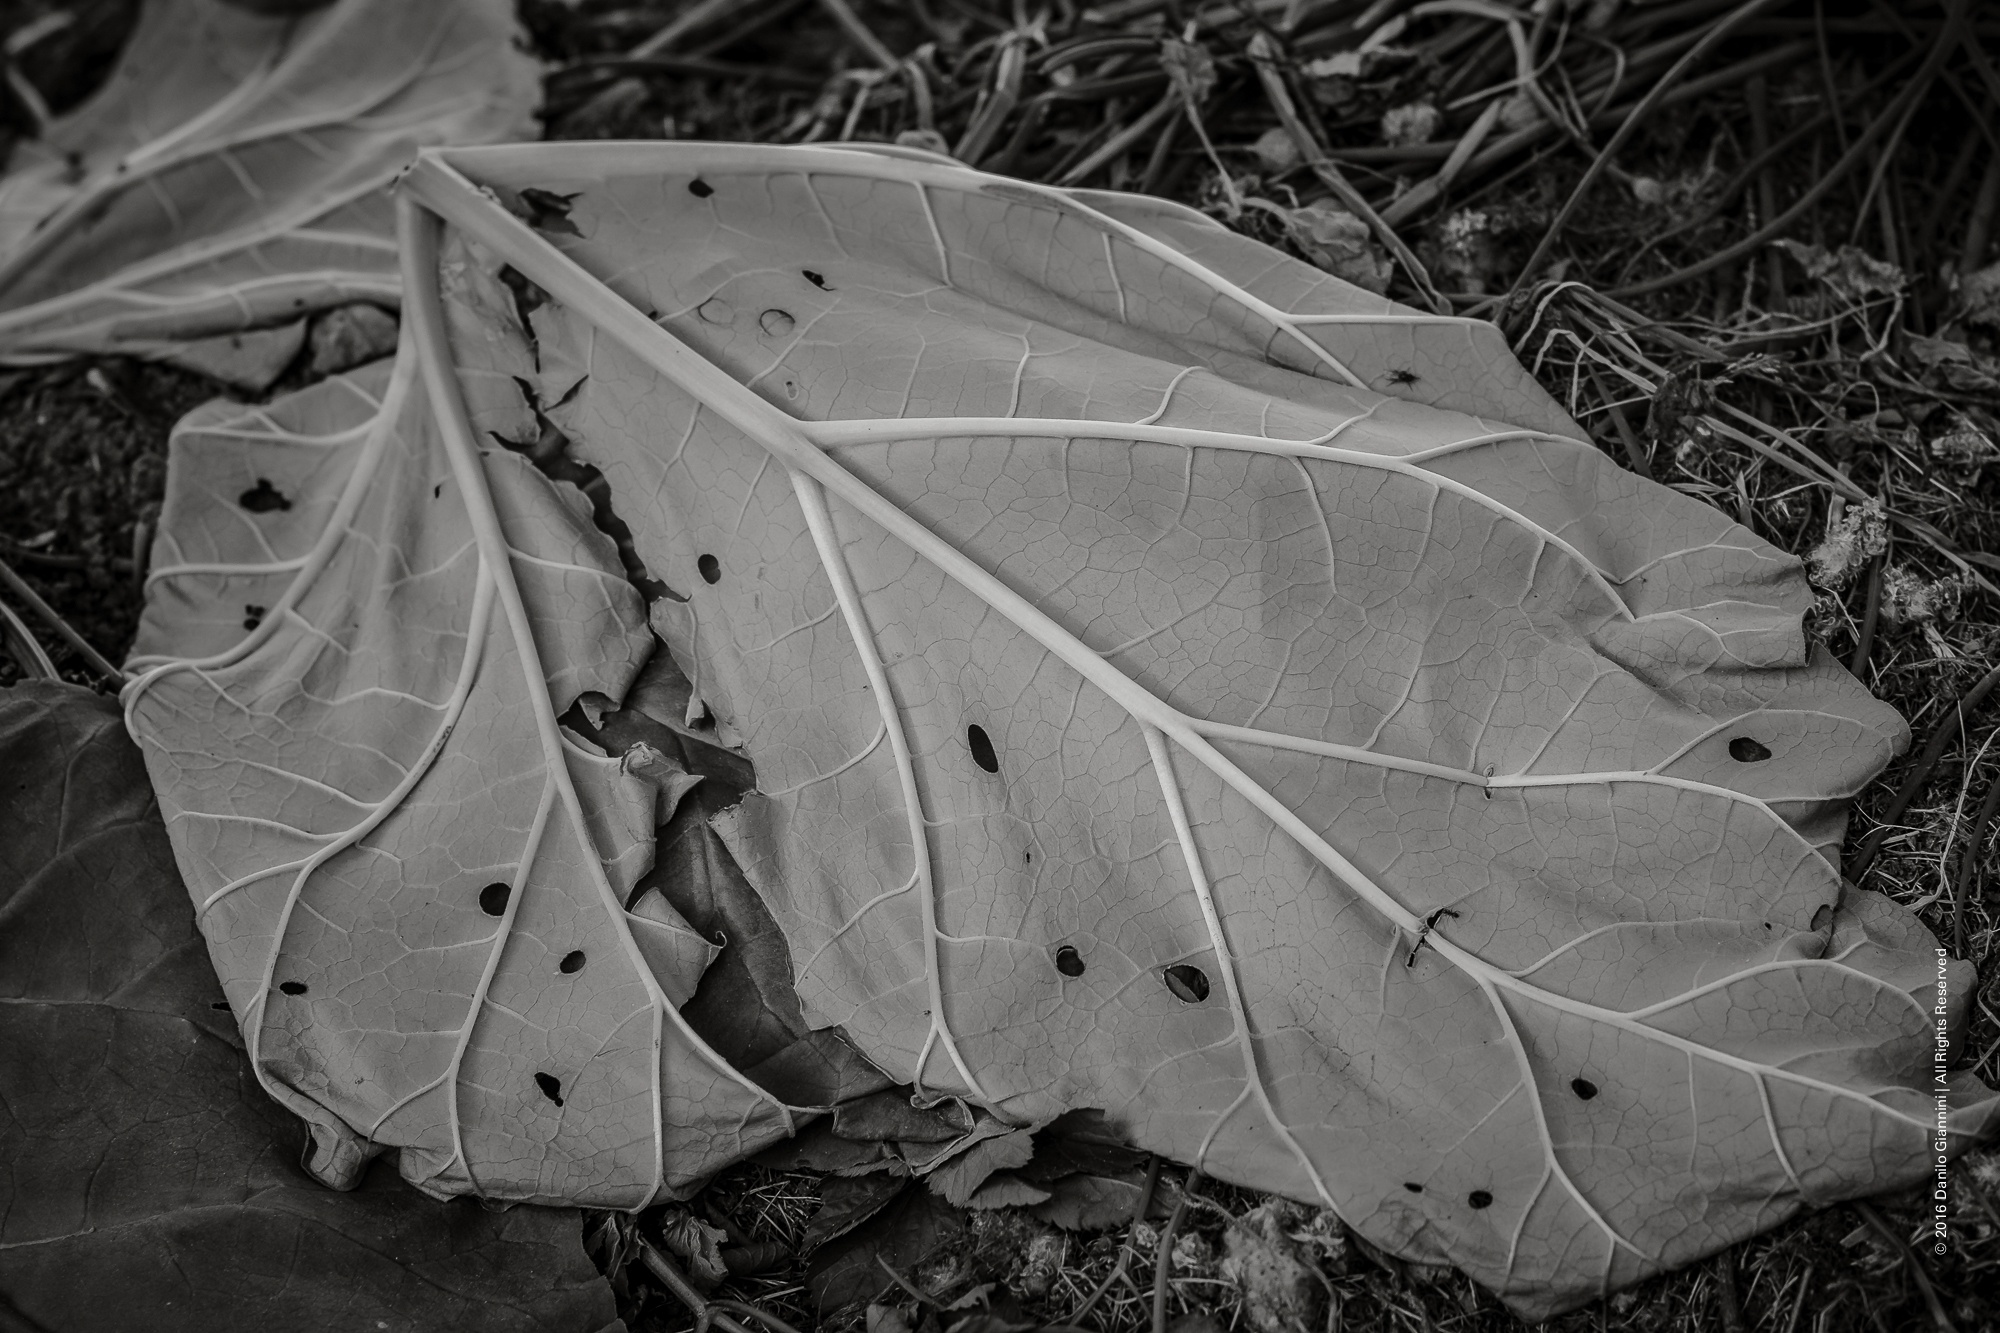 Leaves by Danilo Giannini